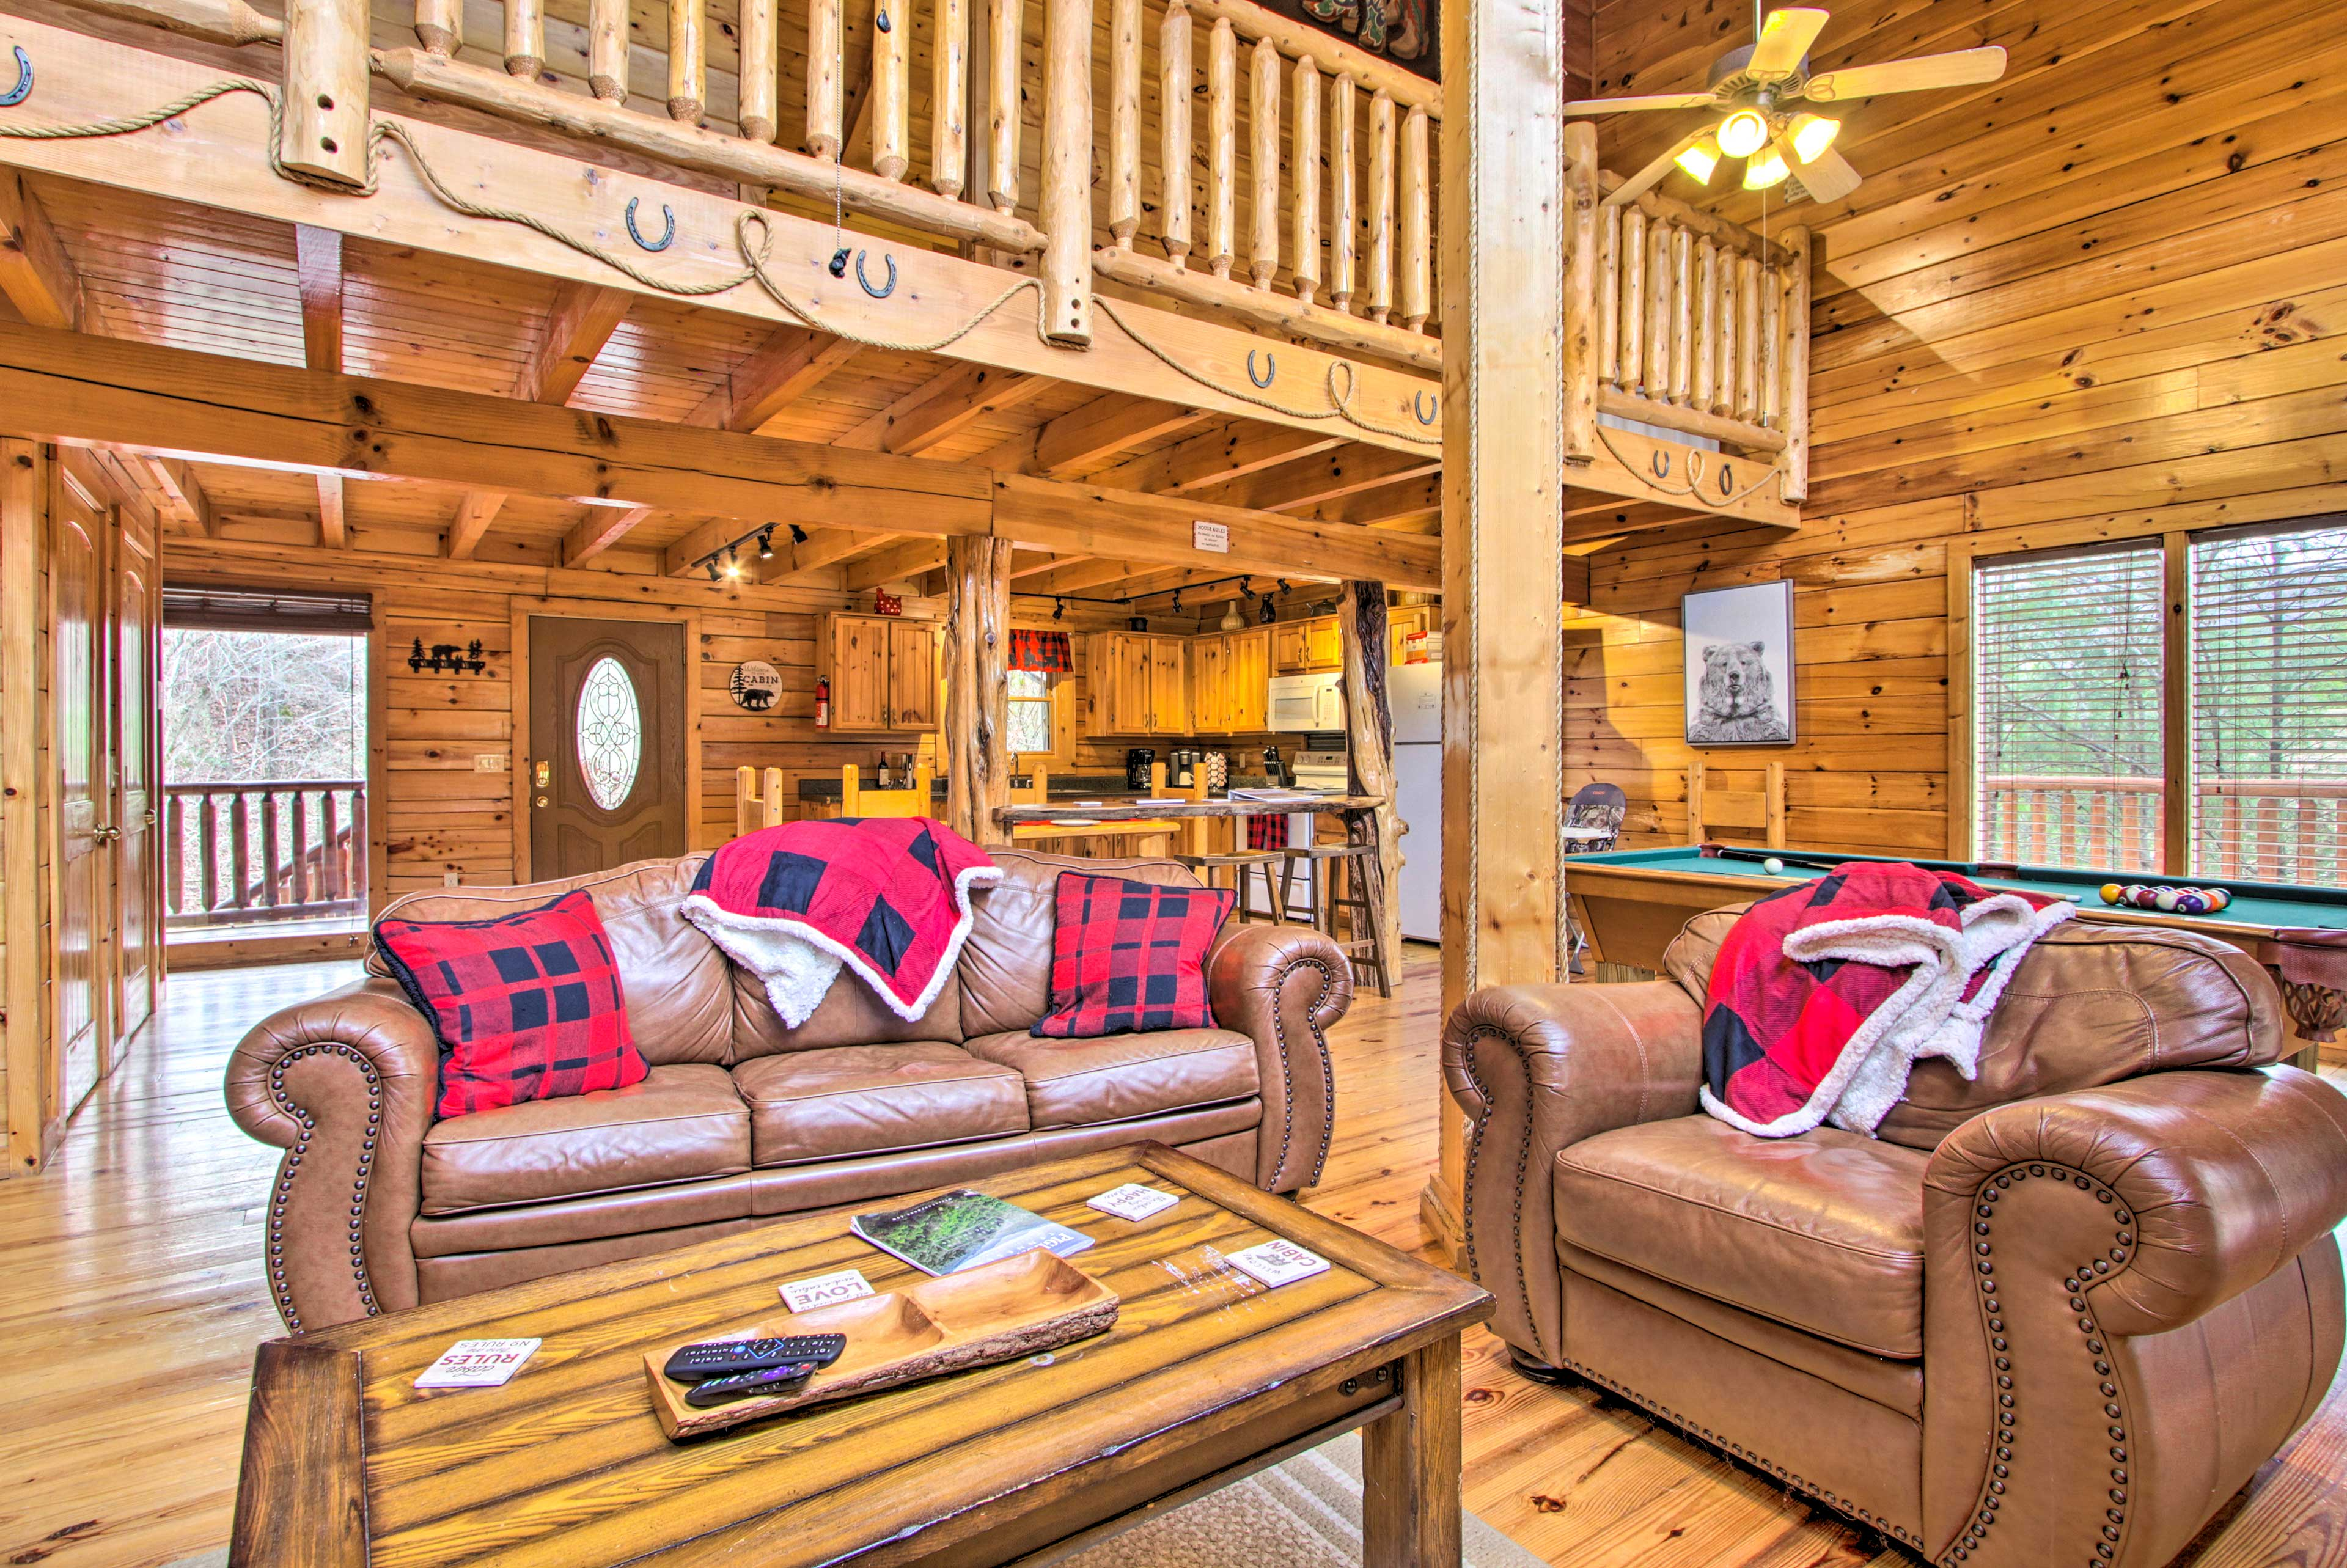 Map out your next rustic Pigeon Forge retreat to this 3-bedroom, 3-bath cabin.